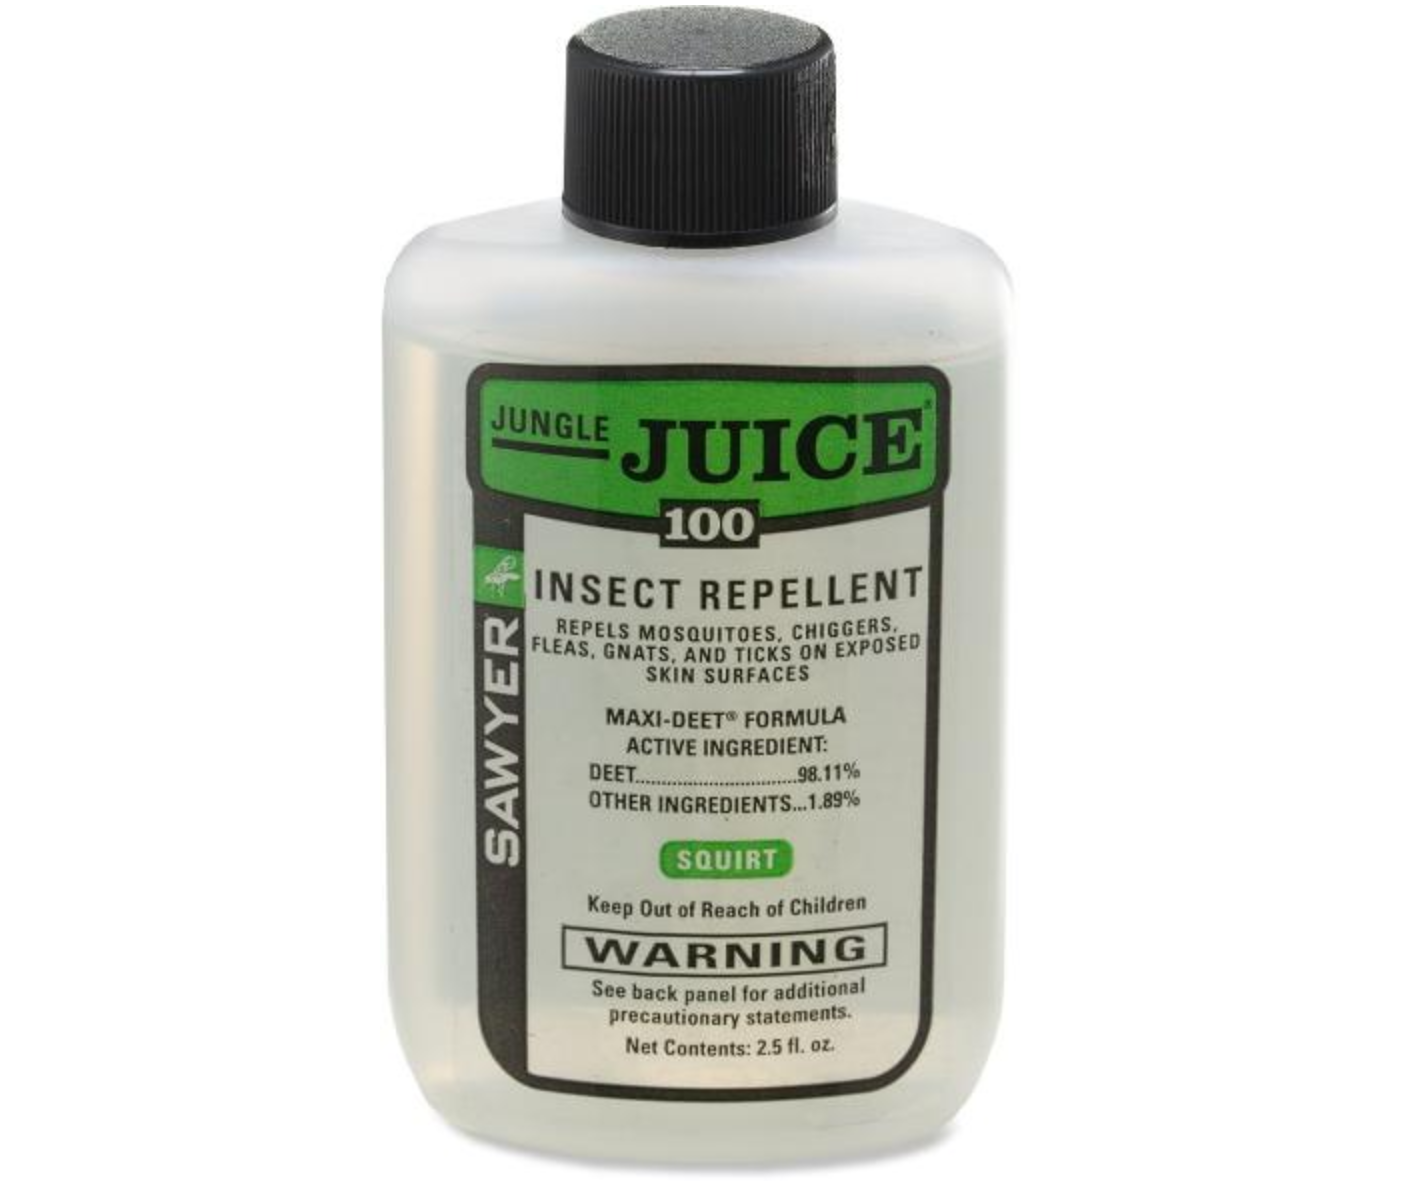 deet insect repellent - Sawyer DEET Jungle JuiceRead why→